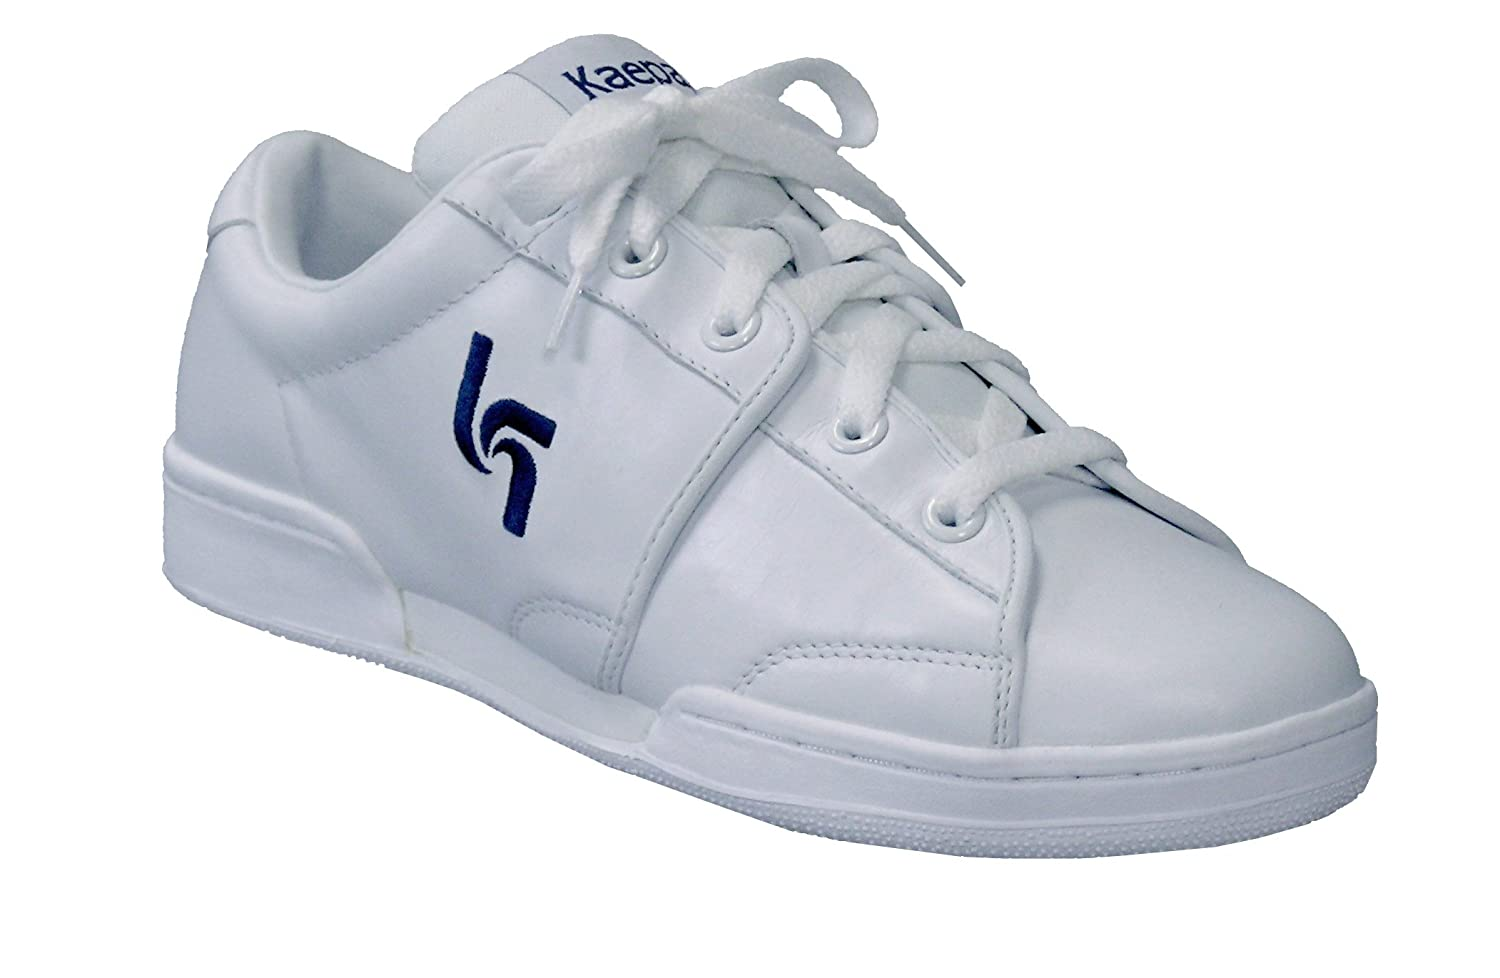 Kaepa Cheer Shoes Size  Women